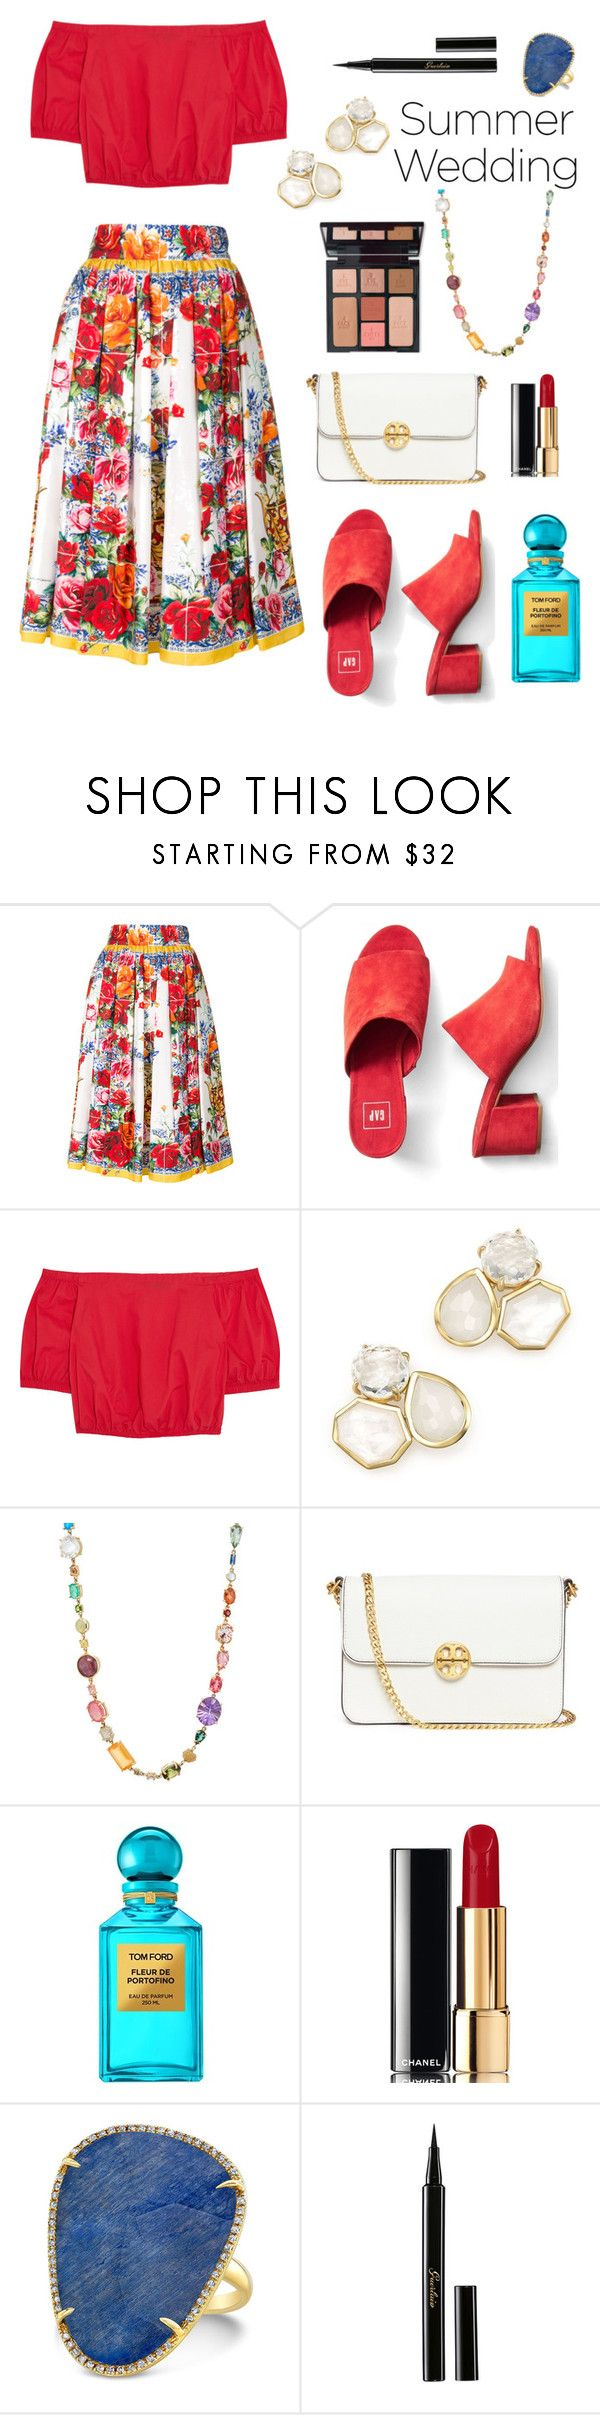 """Portofino"" by ravenclaw-phoenix on Polyvore featuring Dolce&Gabbana, Gap, Madewell, Ippolita, Sharon Khazzam, Tory Burch, Tom Ford, Chanel, Charlotte Tilbury and Guerlain"